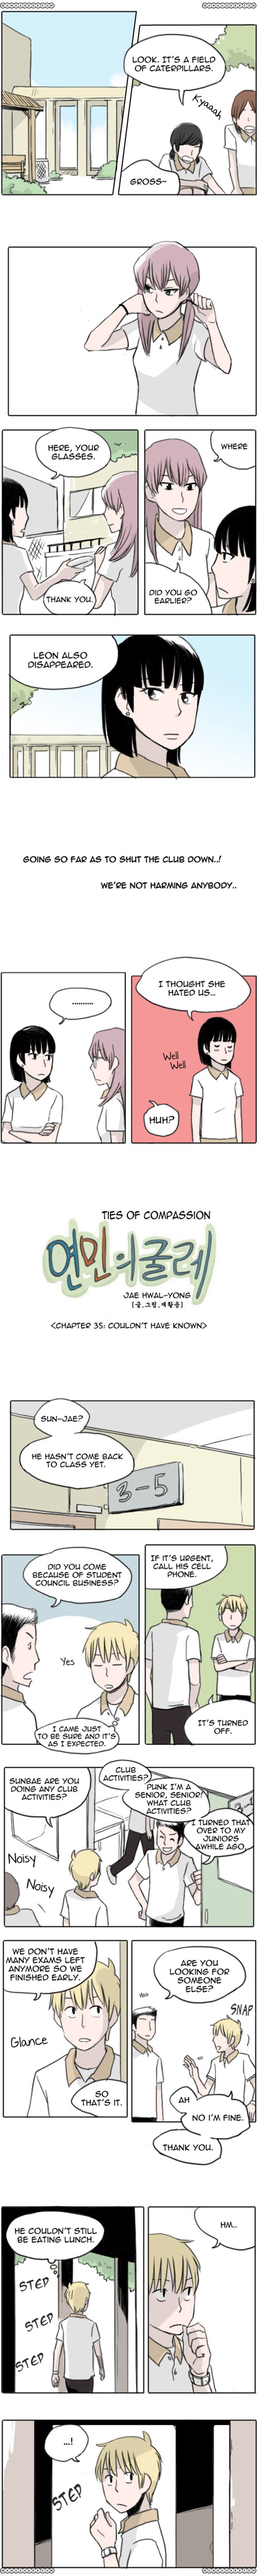 Ties of Compassion 35 Page 1